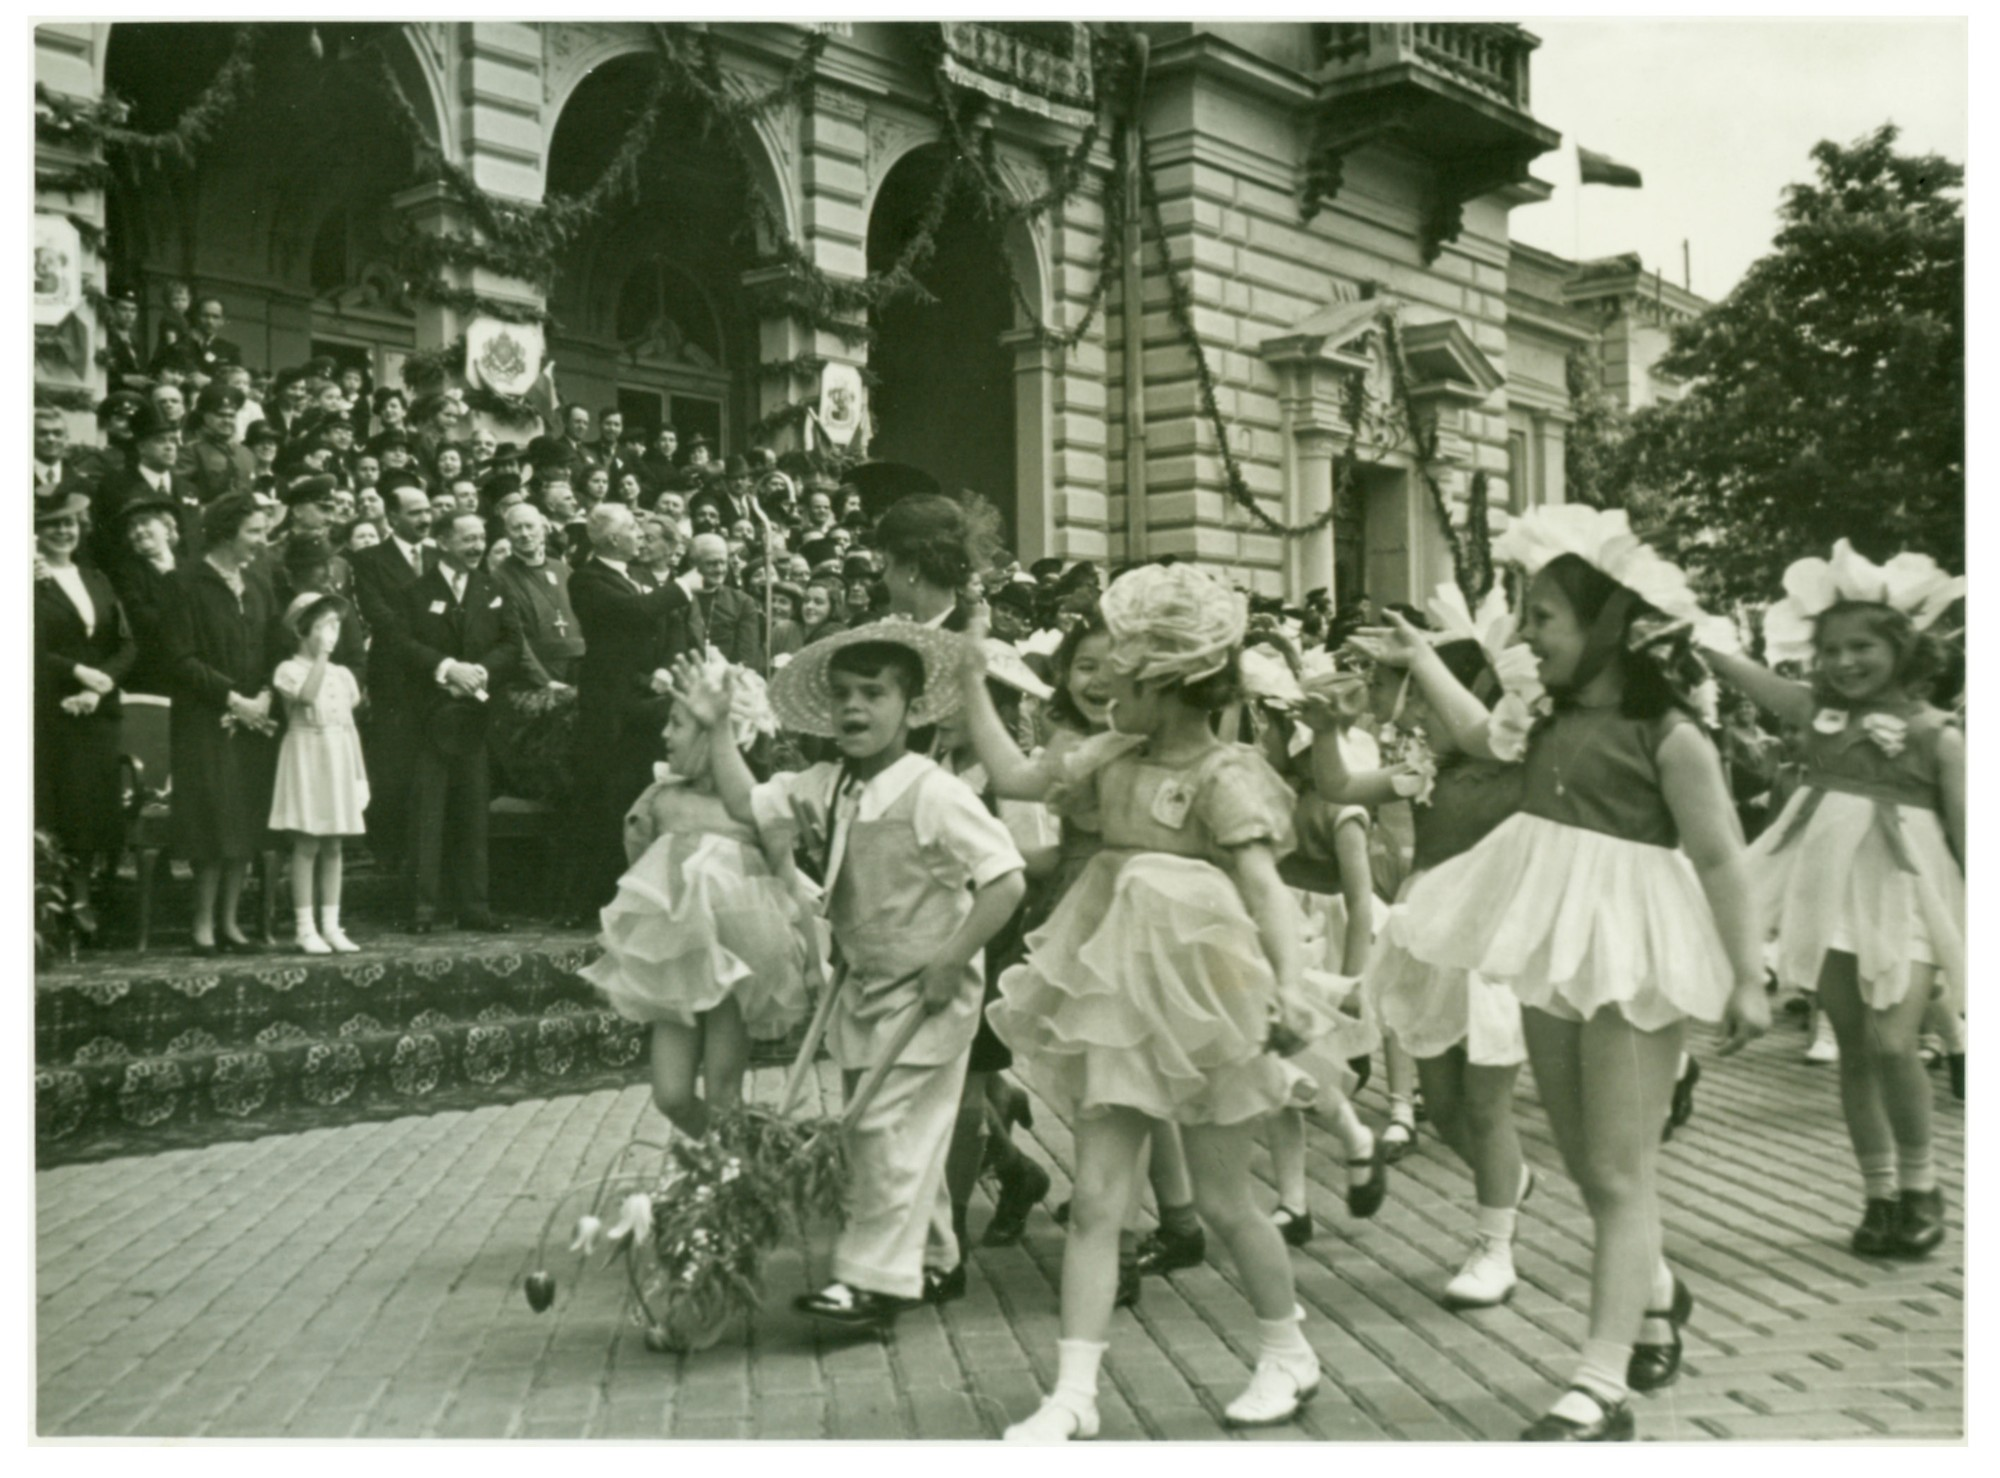 Parade on the occasion of the Day of the Child, © Bilyana Braykova Karastoyanova